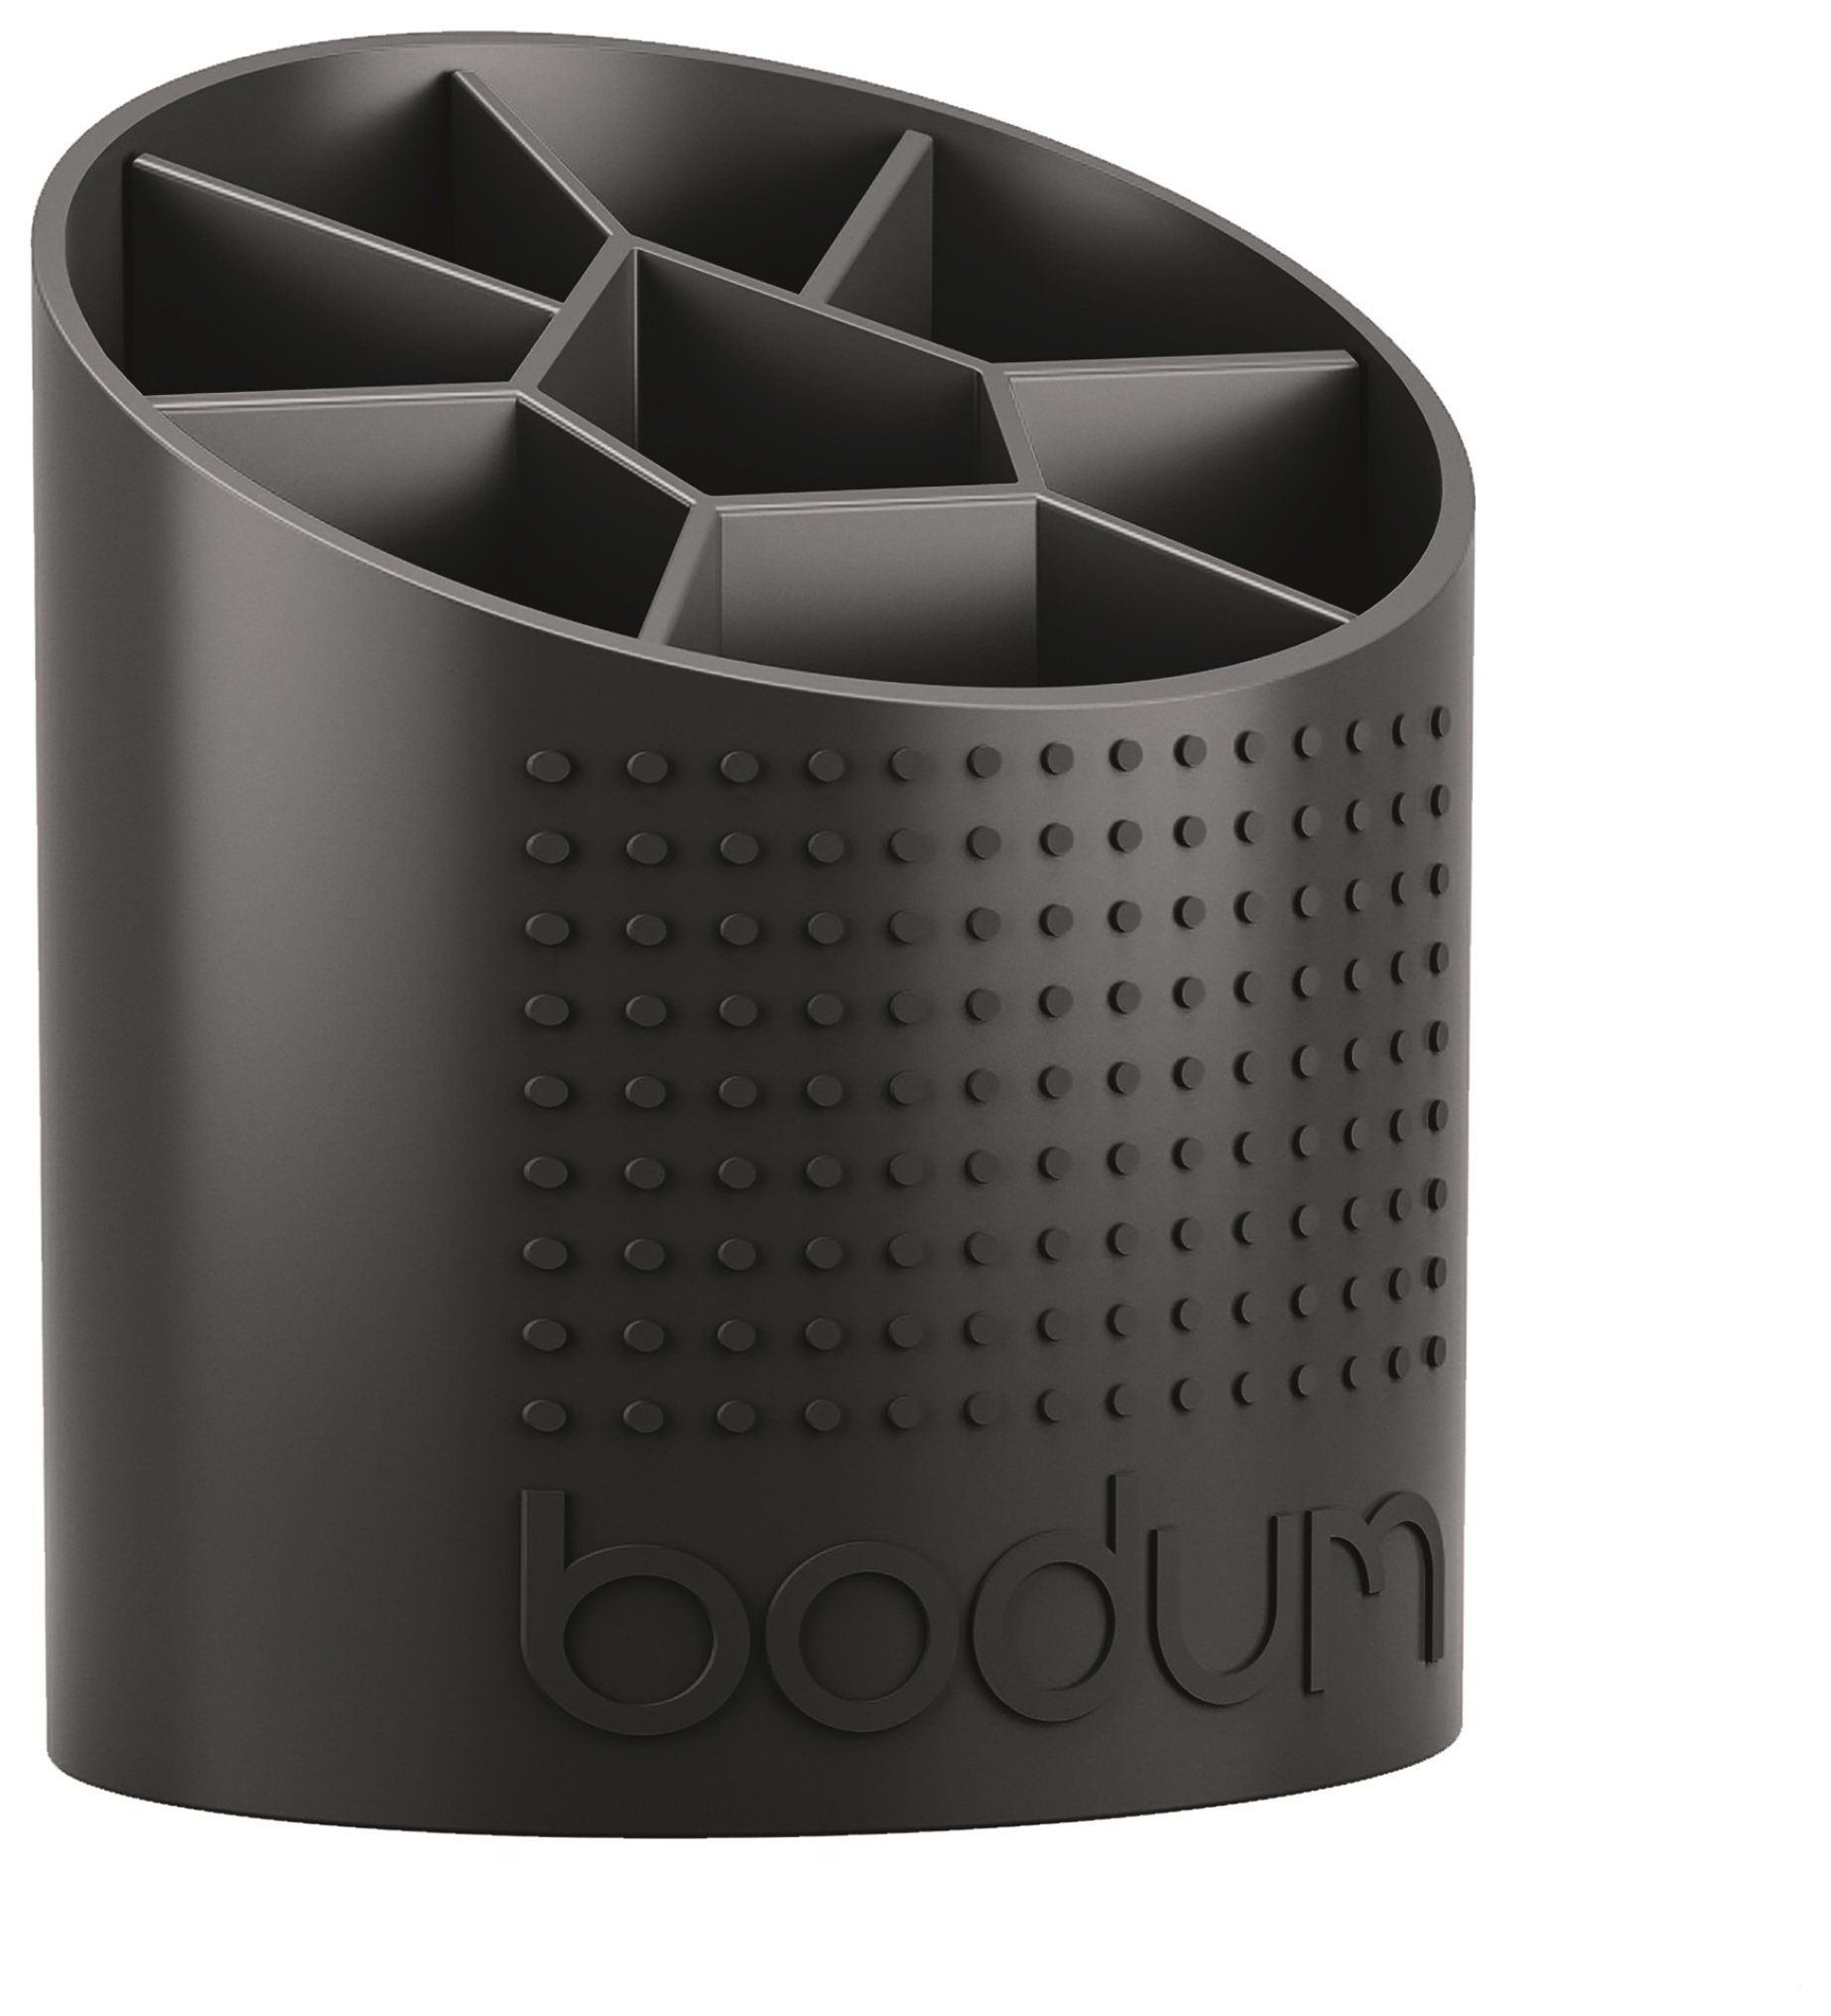 Image of Bodum Bistro Utensil Holder - Black